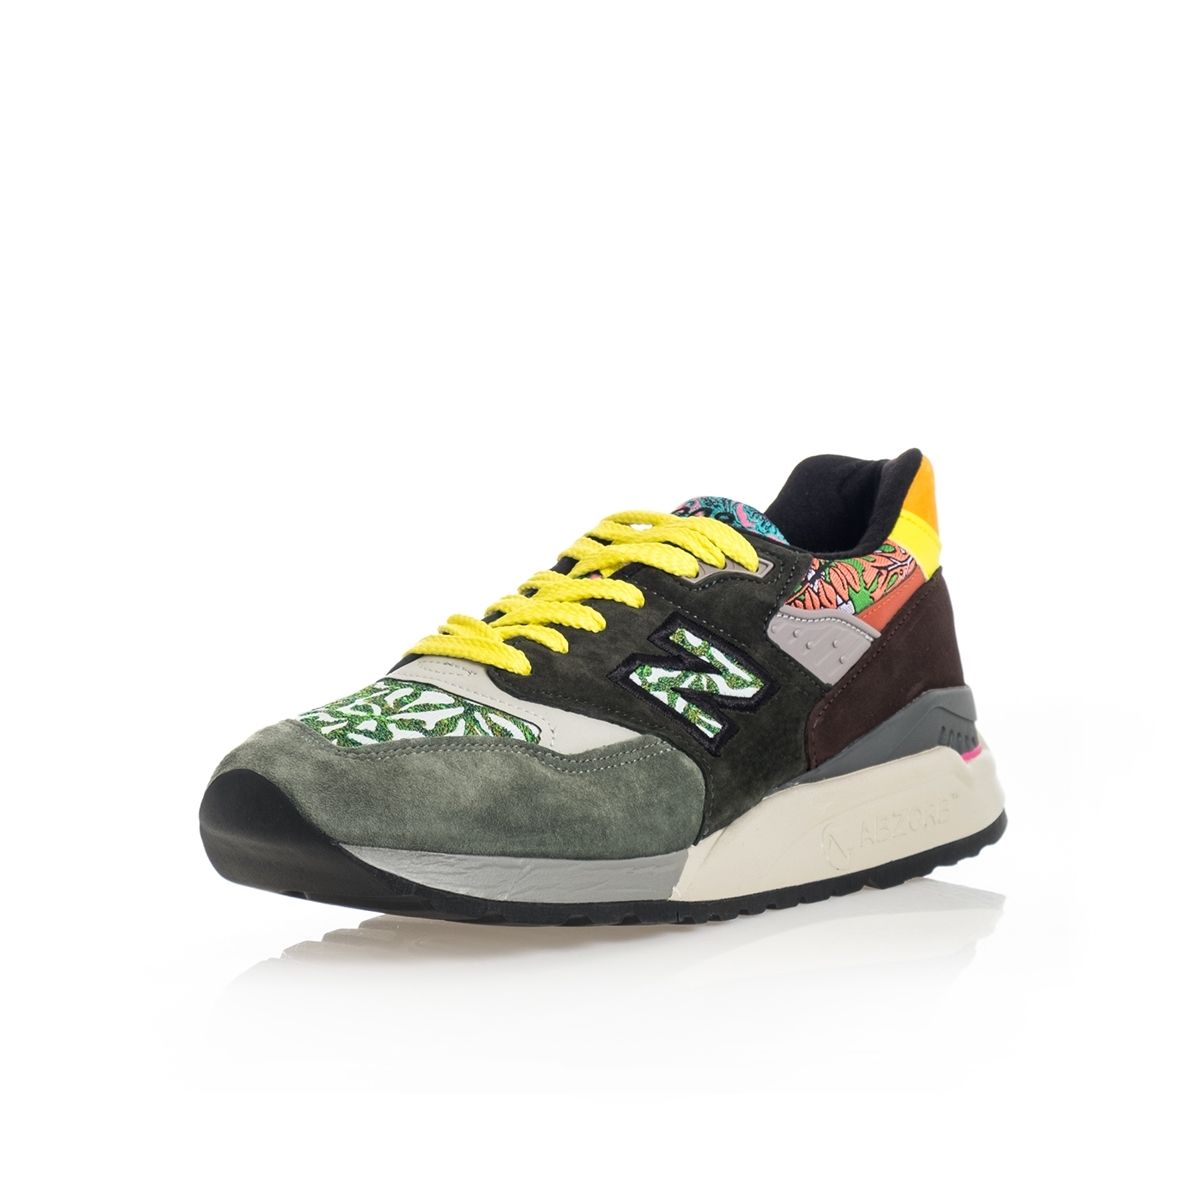 SNEAKERS MAN  NEW BALANCE LIFESTYLE 998 M998AWK MADE IN USA GREEN image 2